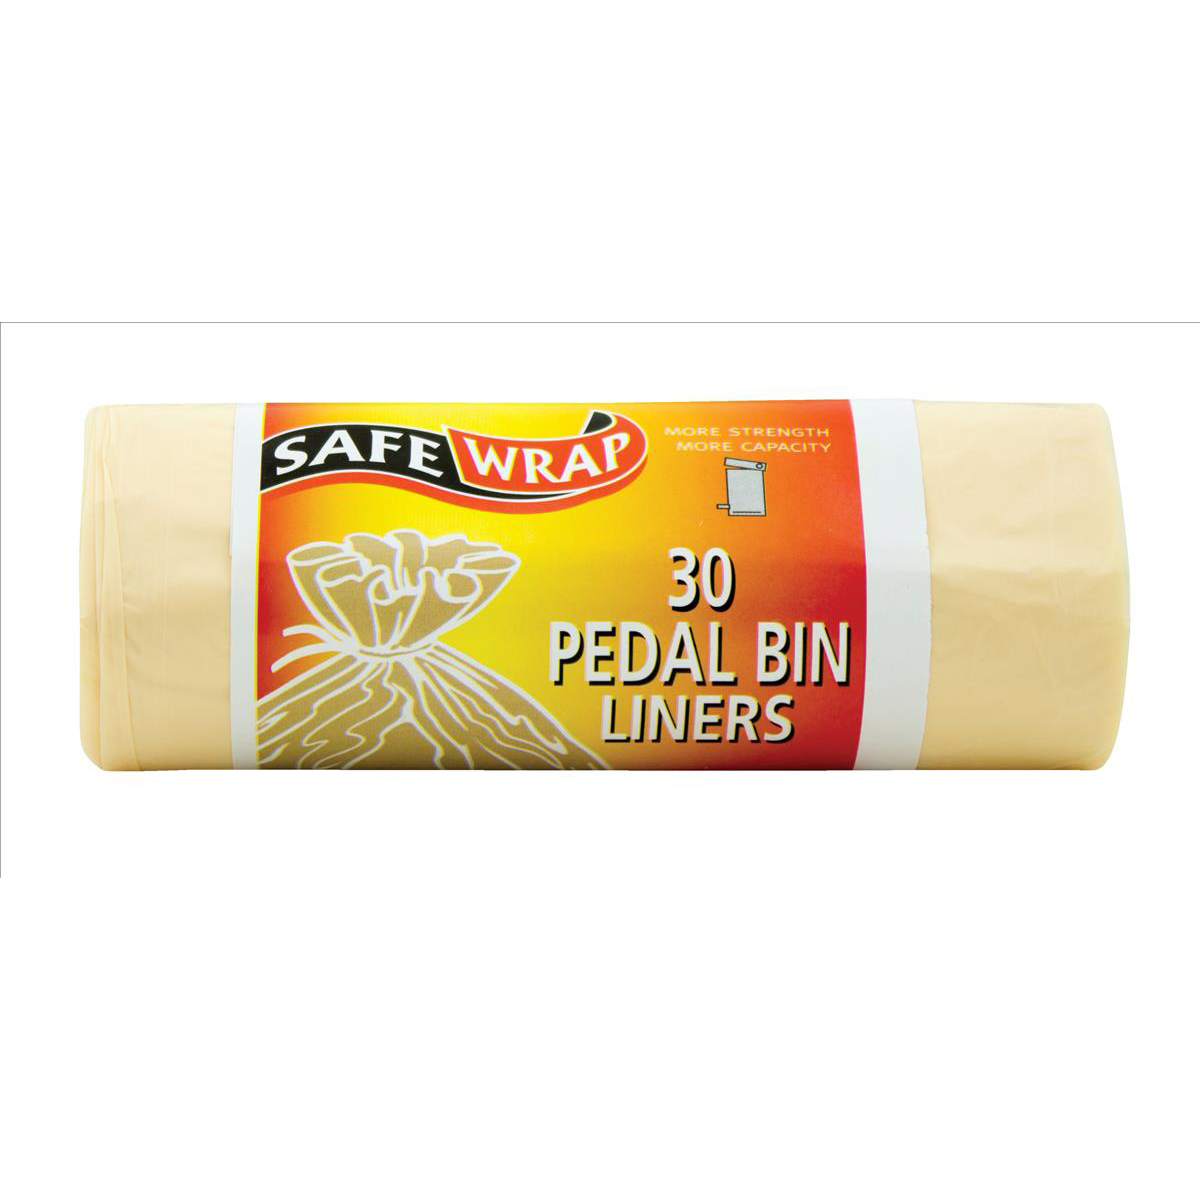 Safewrap Pedal Bin Liners 15Litre Capacity 30 Sacks per Roll 1066x457mm White Ref RY00432 4 Rolls